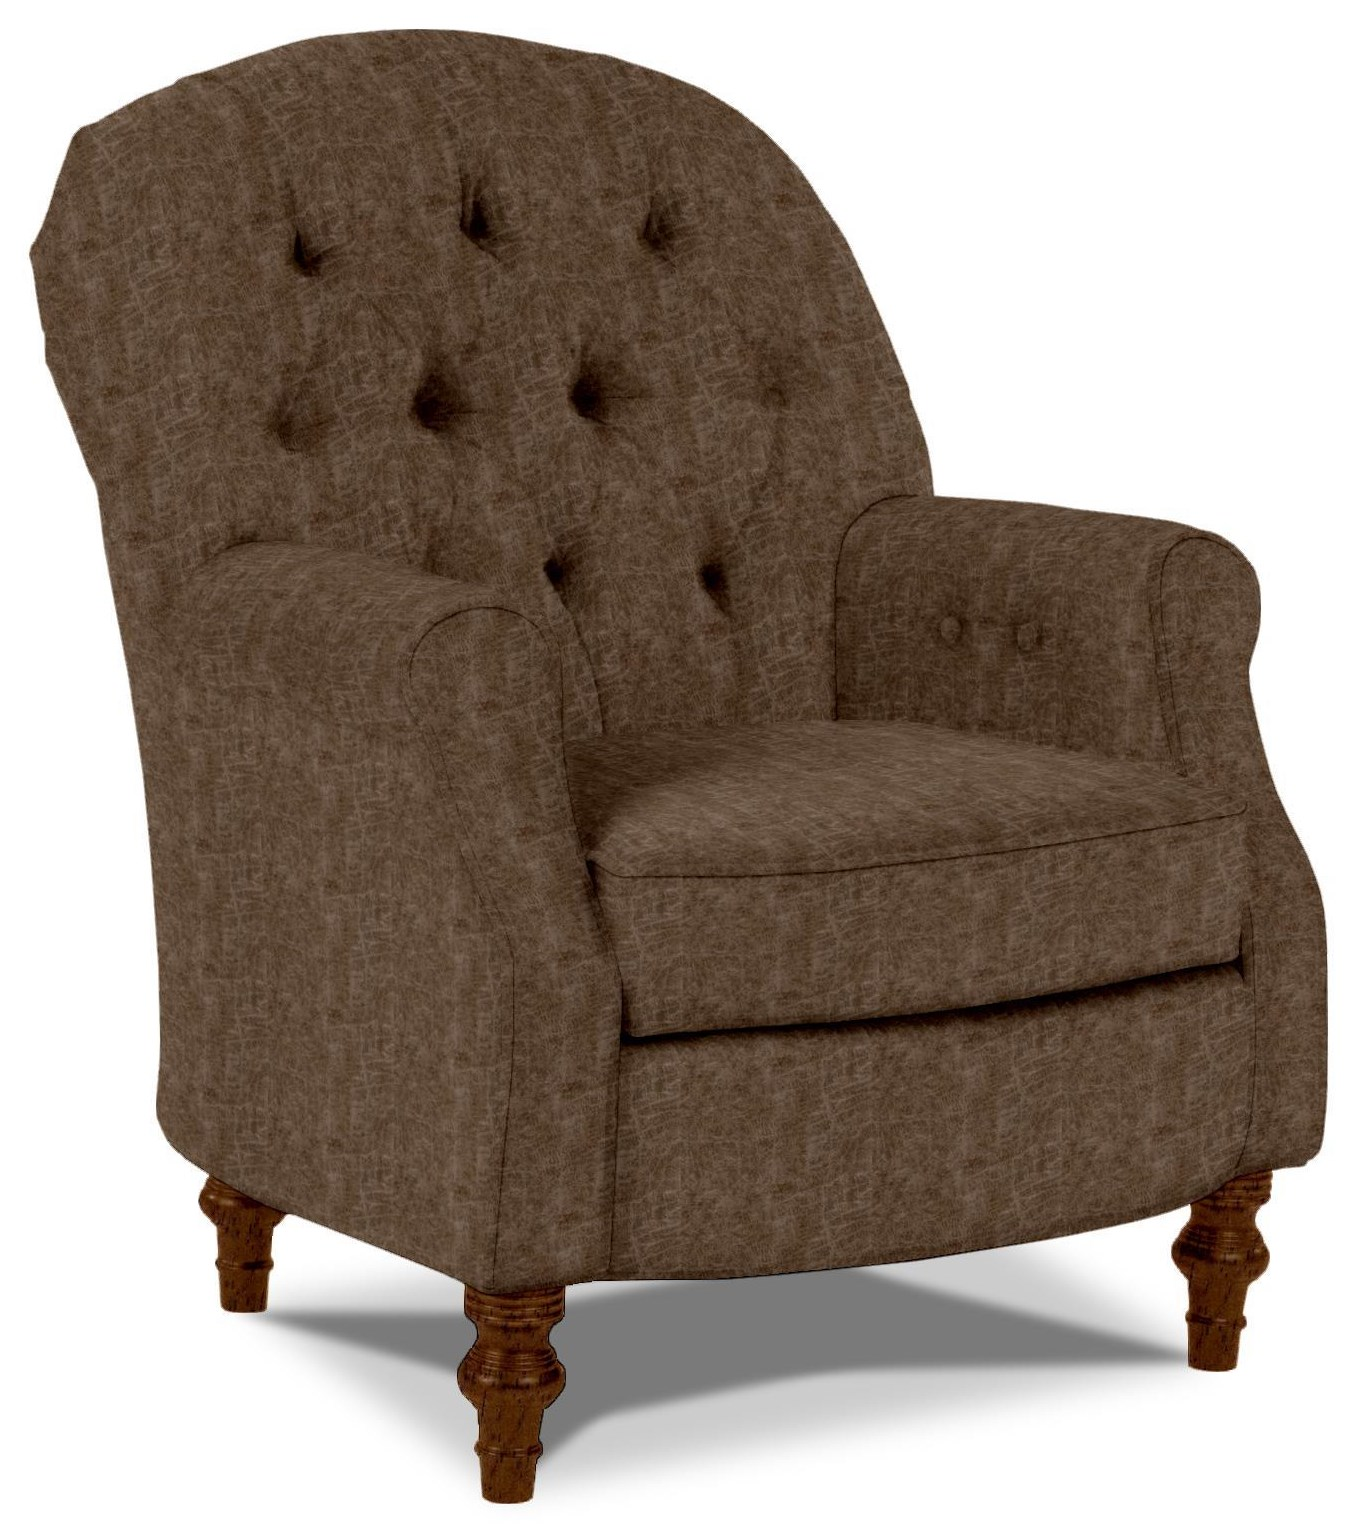 club CLUB CHAIR by Best Home Furnishings at Walker's Furniture